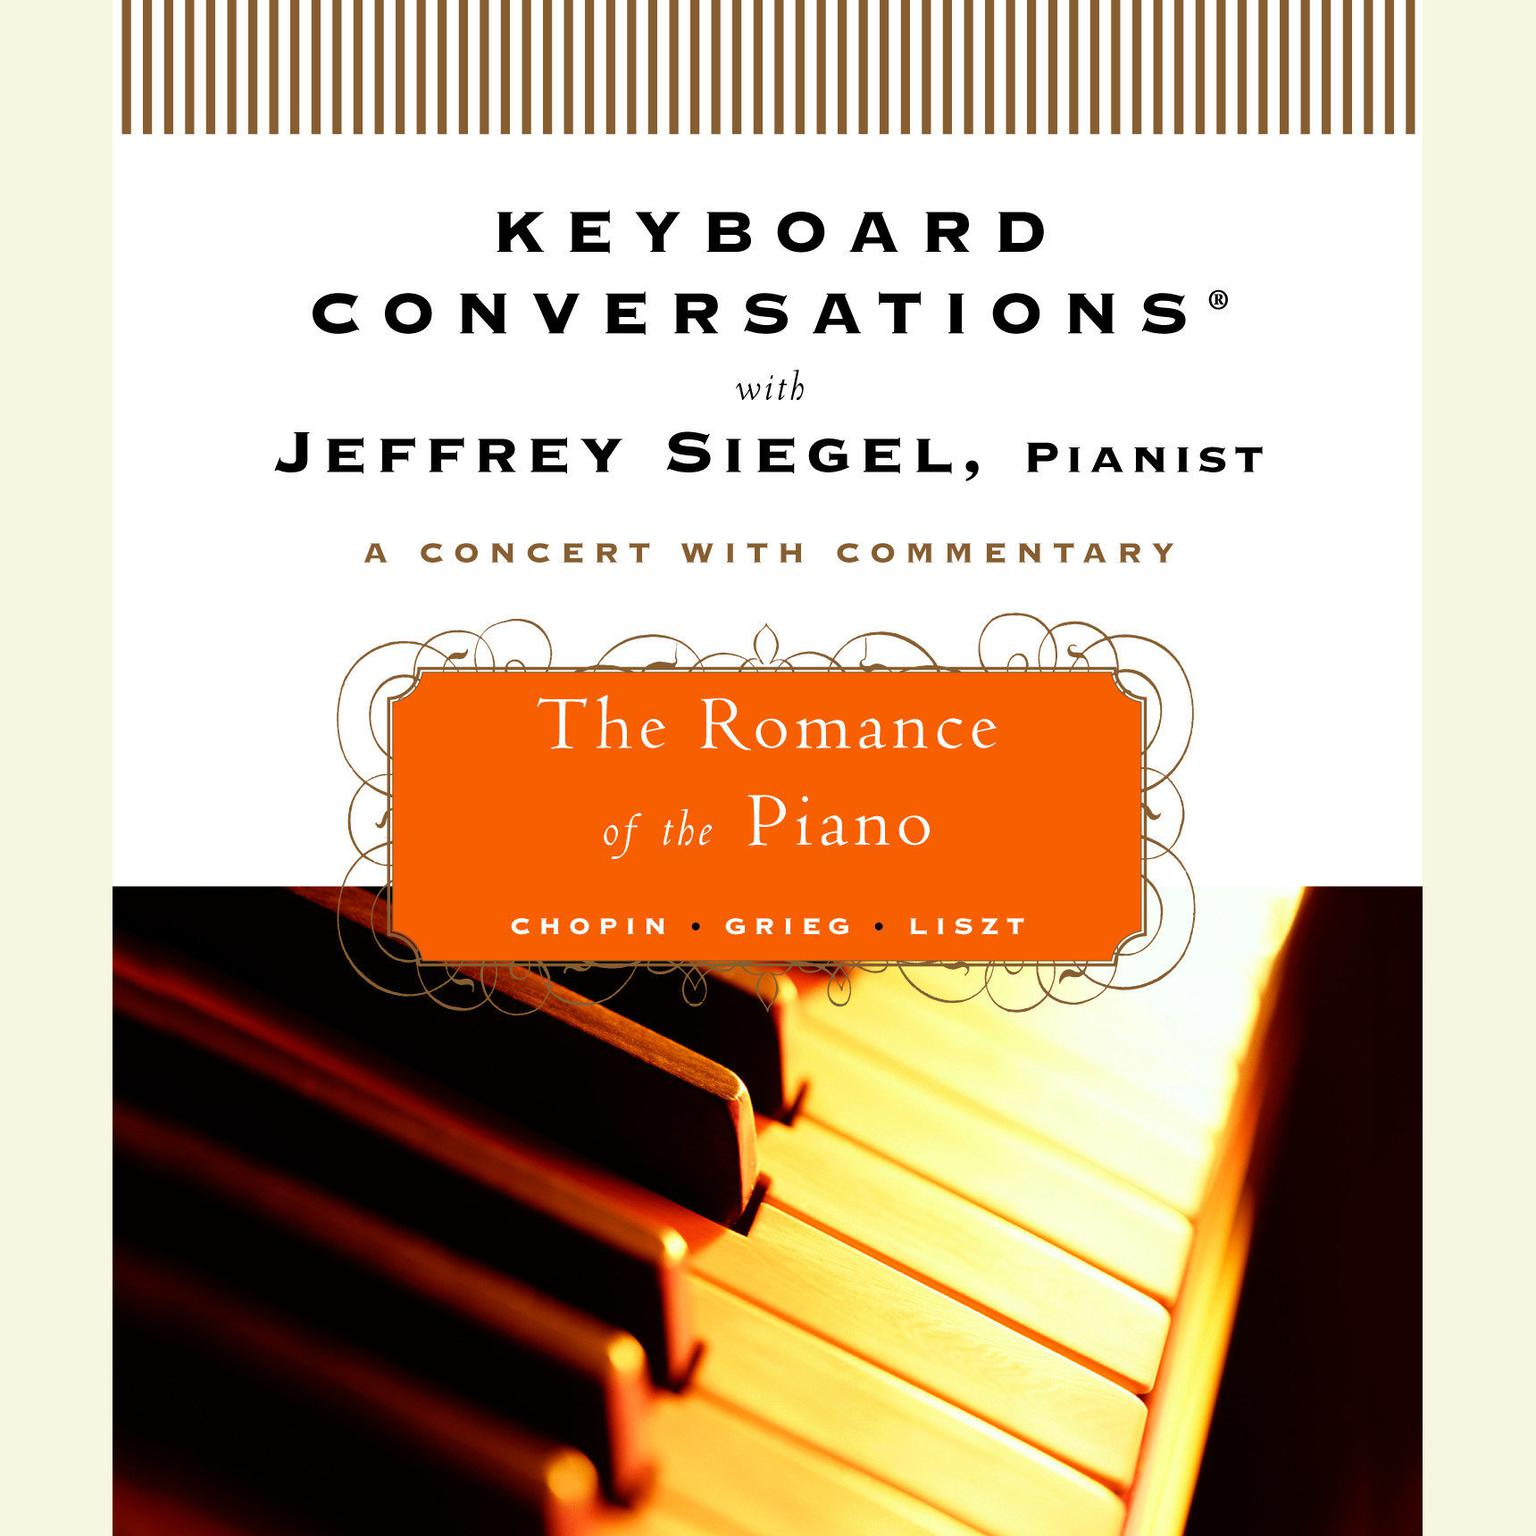 Printable Keyboard Conversations®: The Romance of the Piano: The Romance of the Piano Audiobook Cover Art